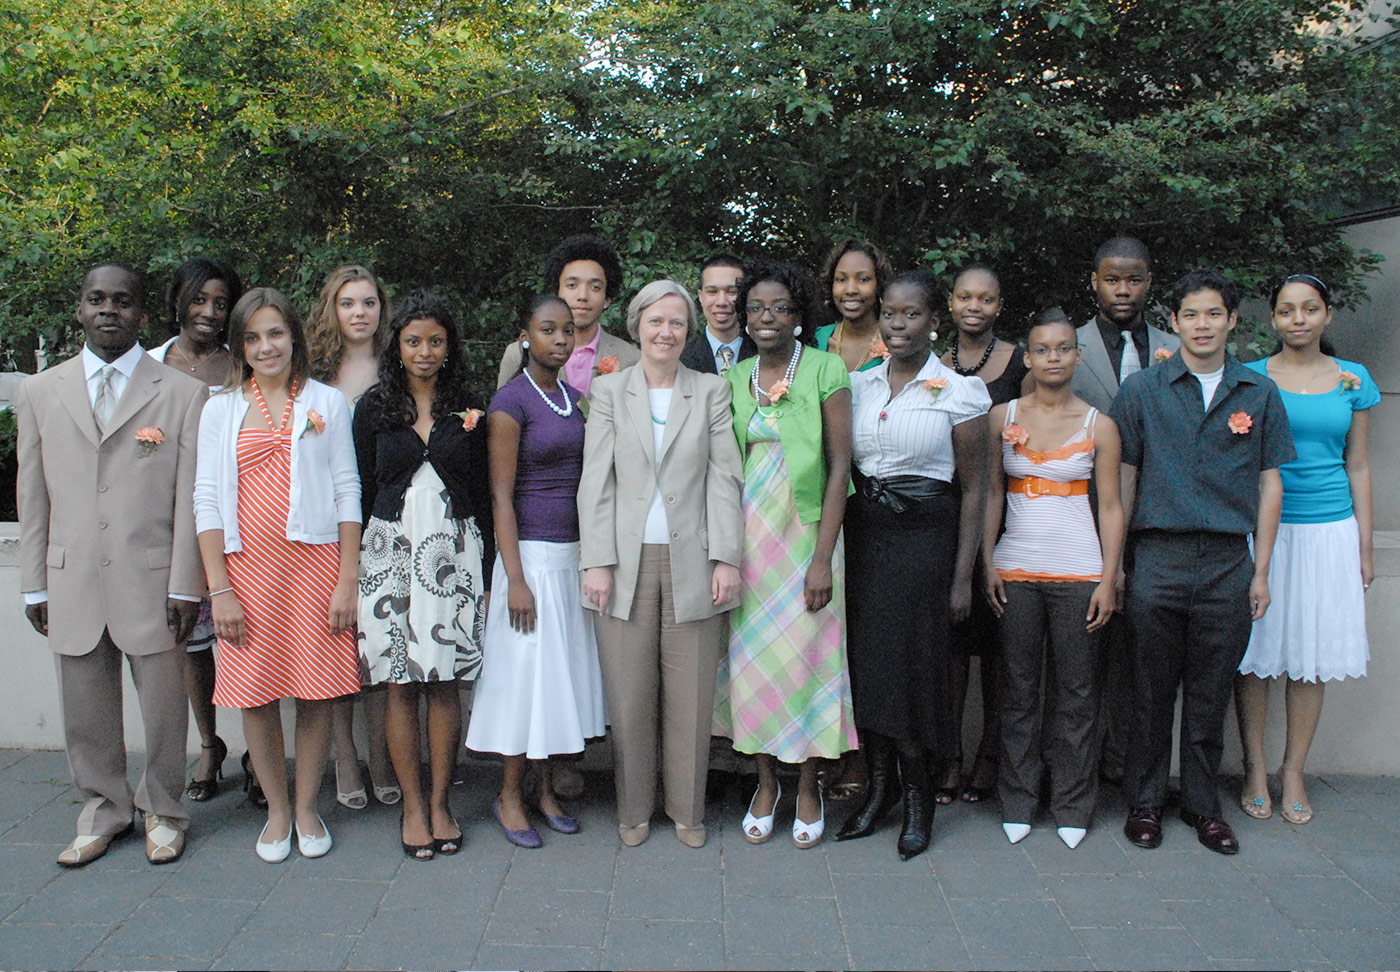 Scholars from the Class of 2007 at their Graduation Ceremony posing with former Princeton U. President Shirley M. Tilghman